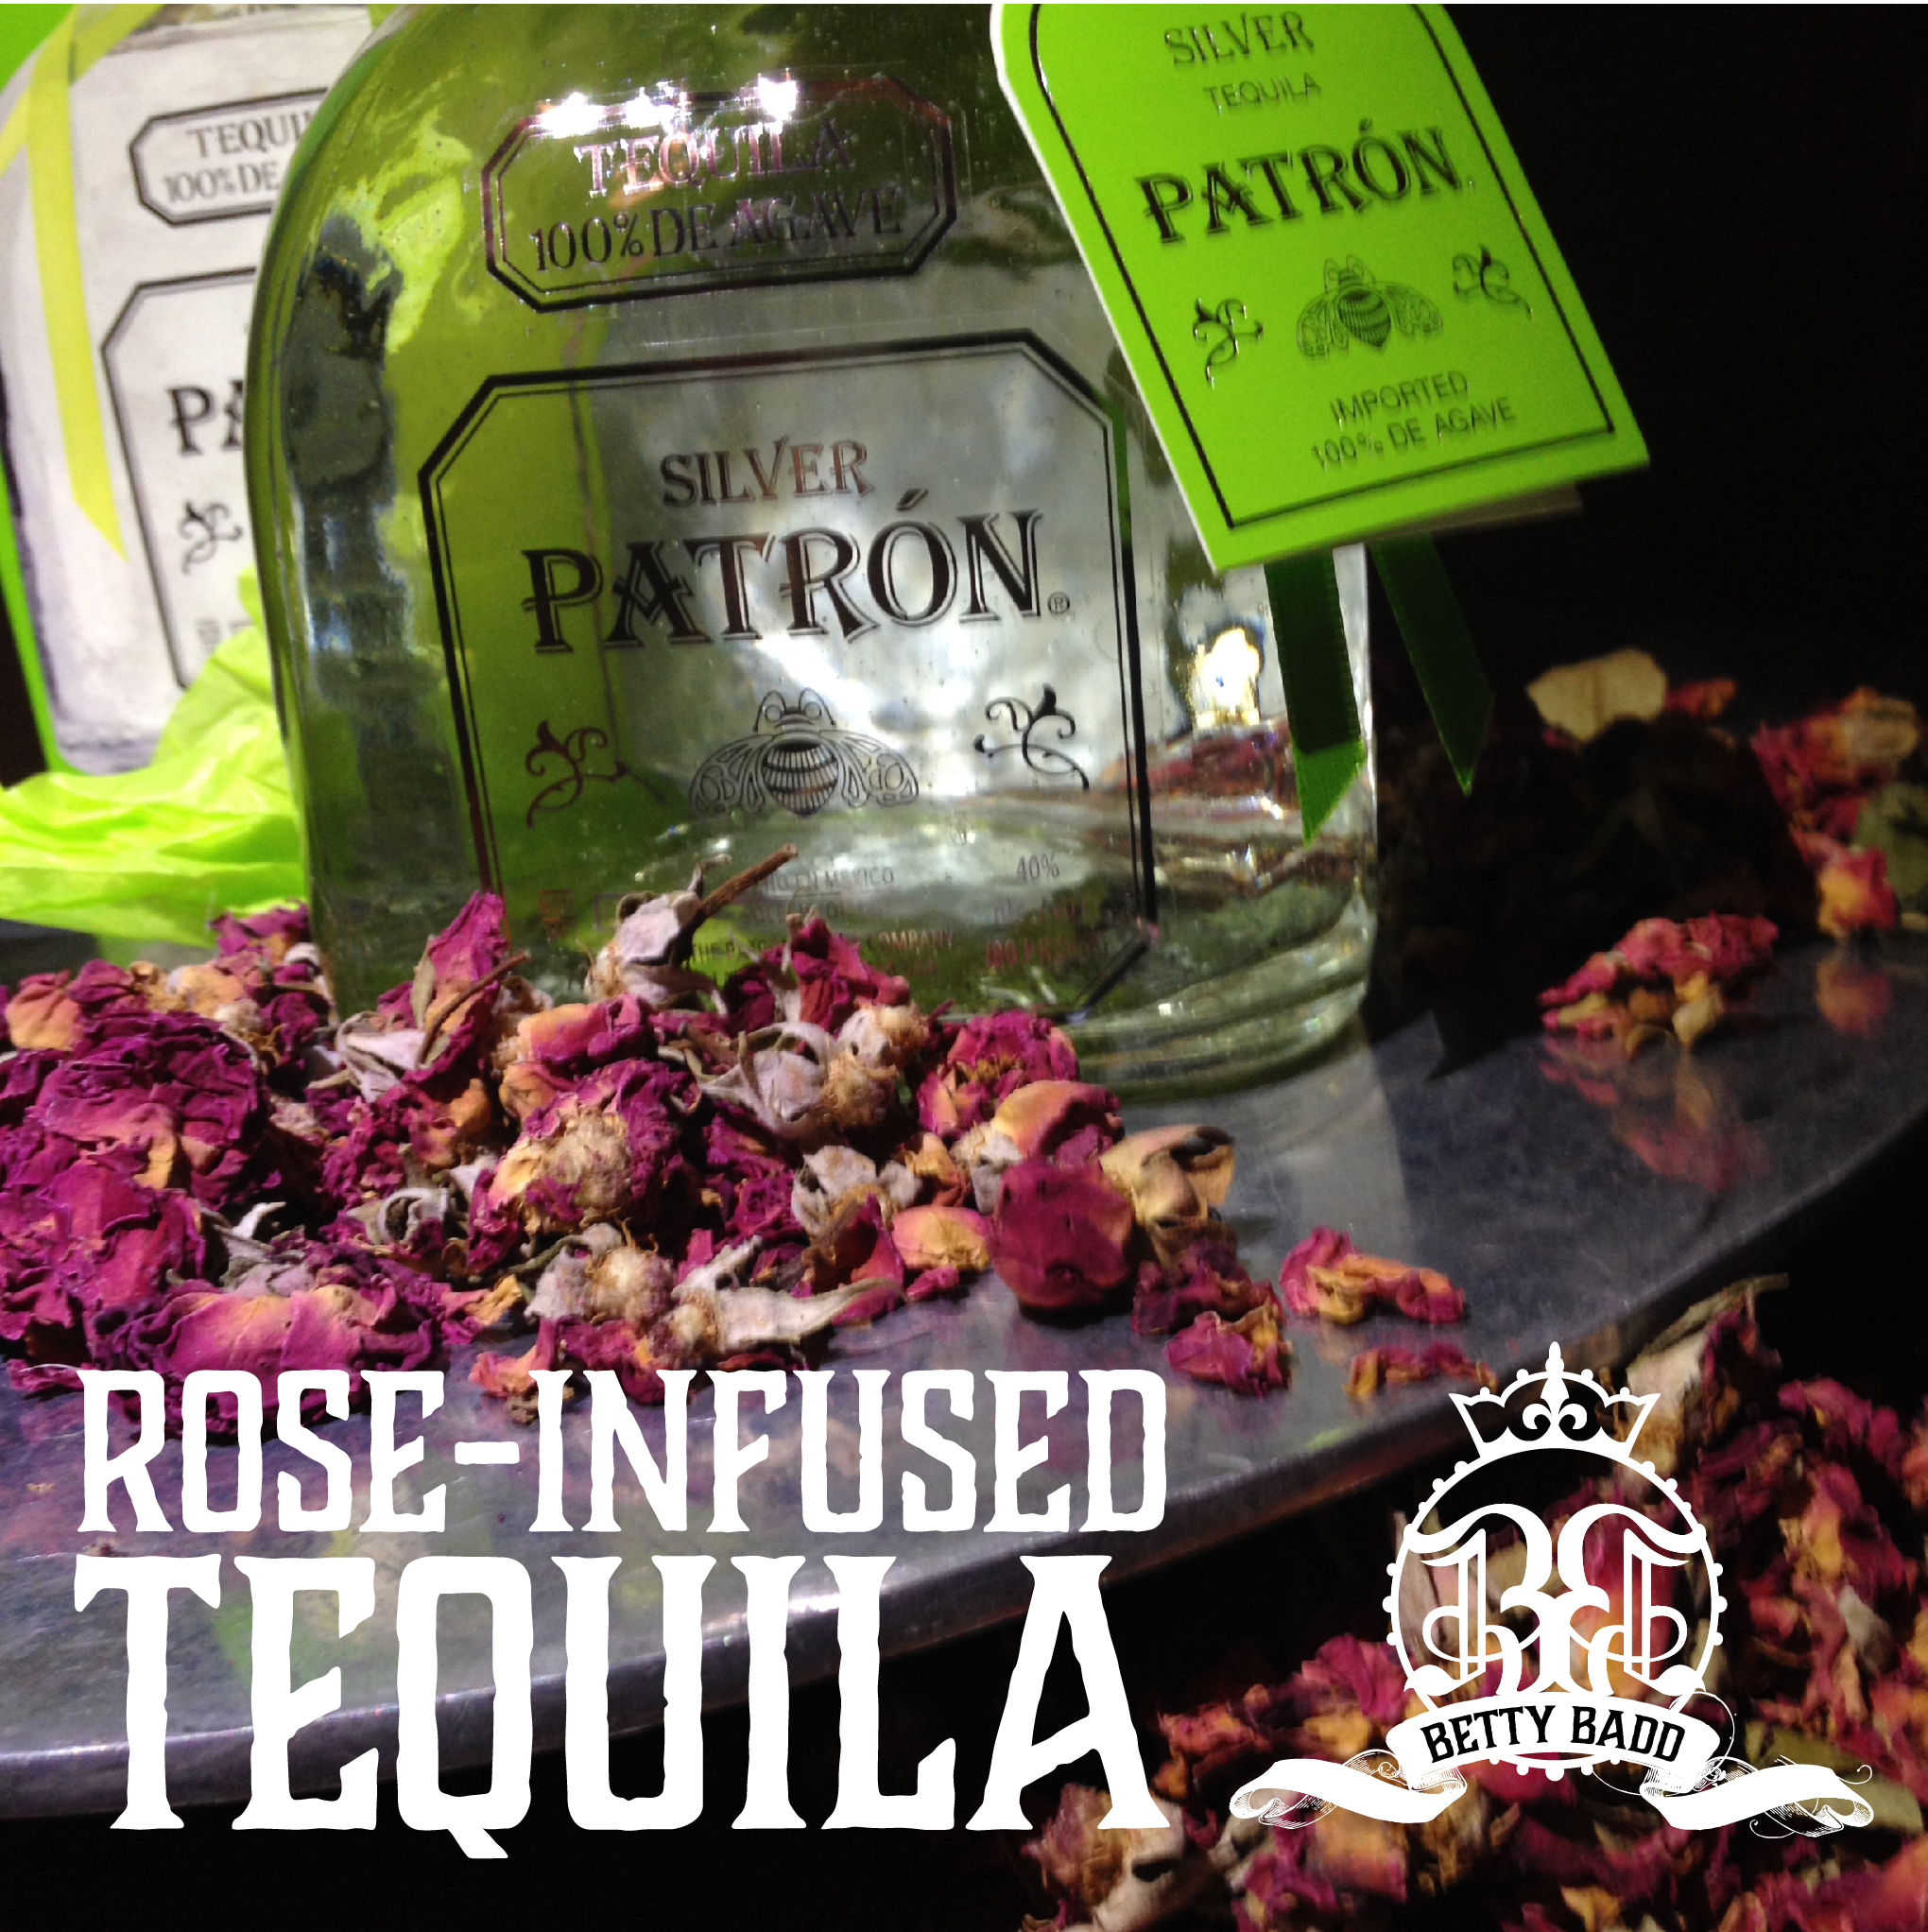 rose_infused_tequila.jpg